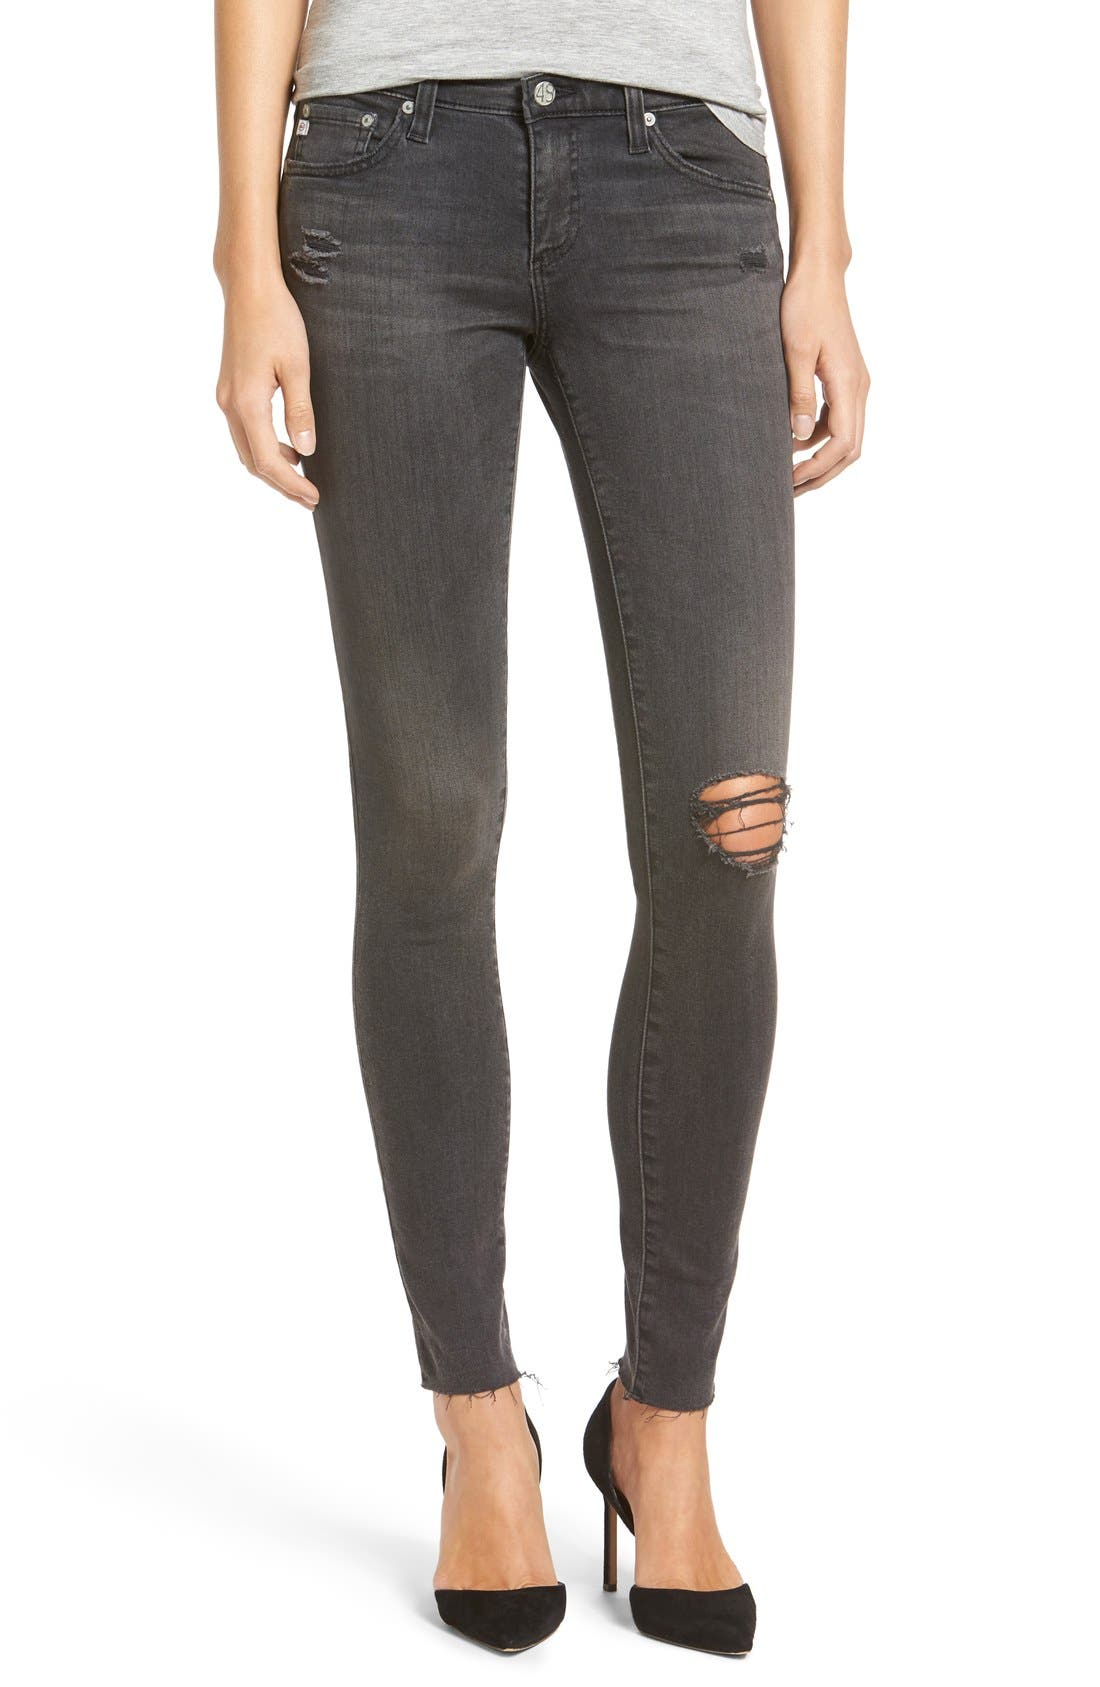 AG 'The Legging' Ripped Super Skinny Jeans